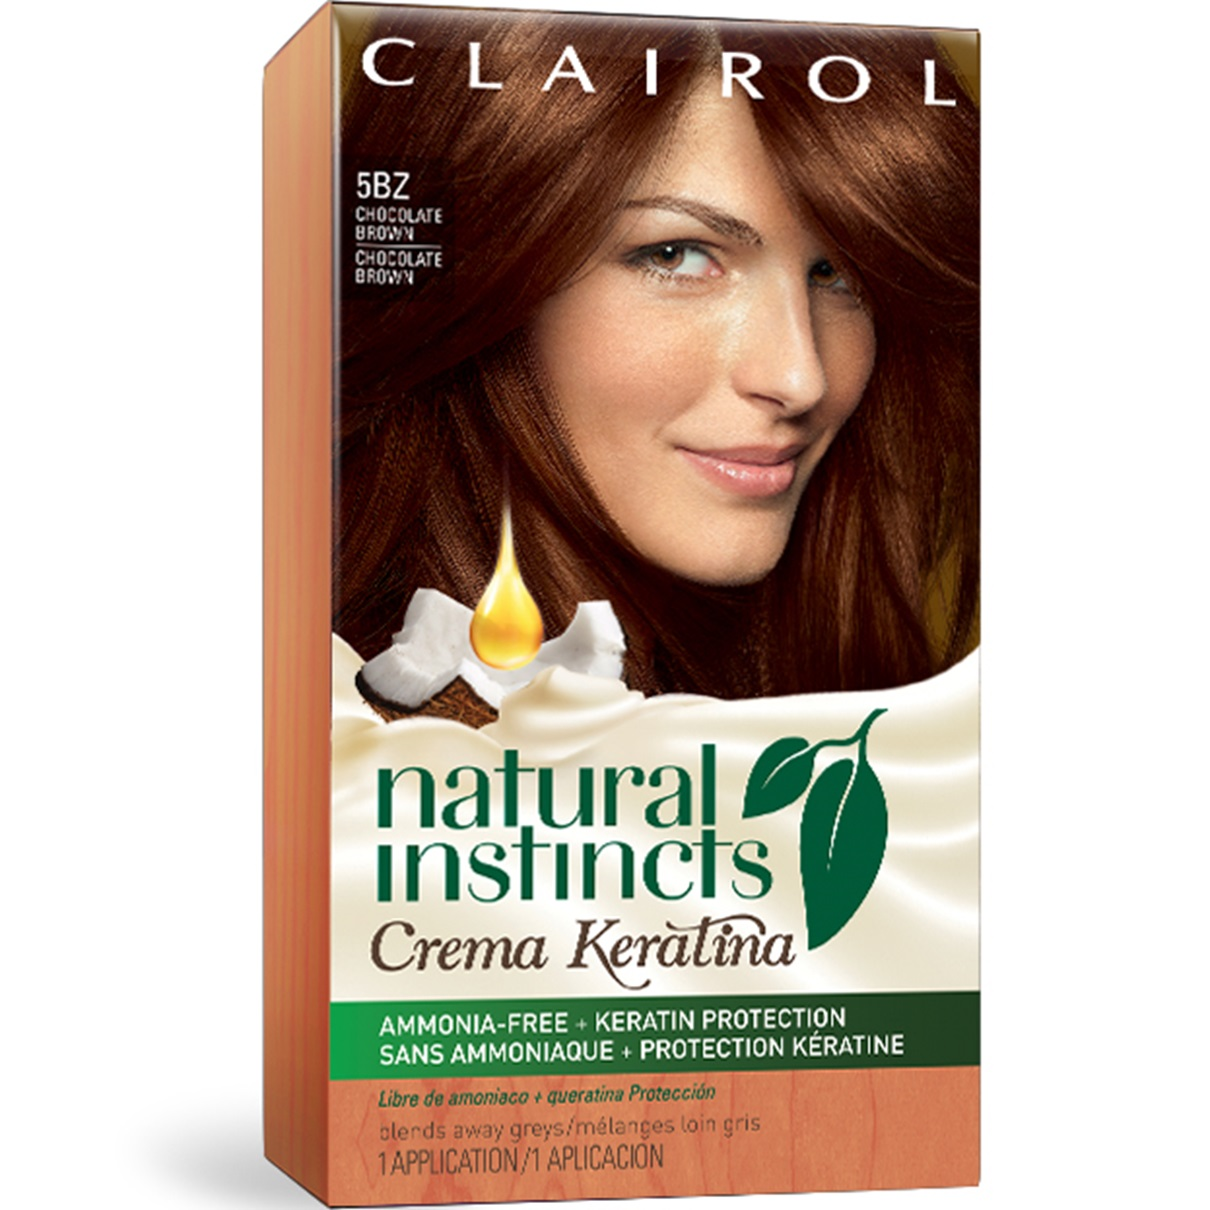 Natural Instincts Crema Keratina Just The Brunette Shades